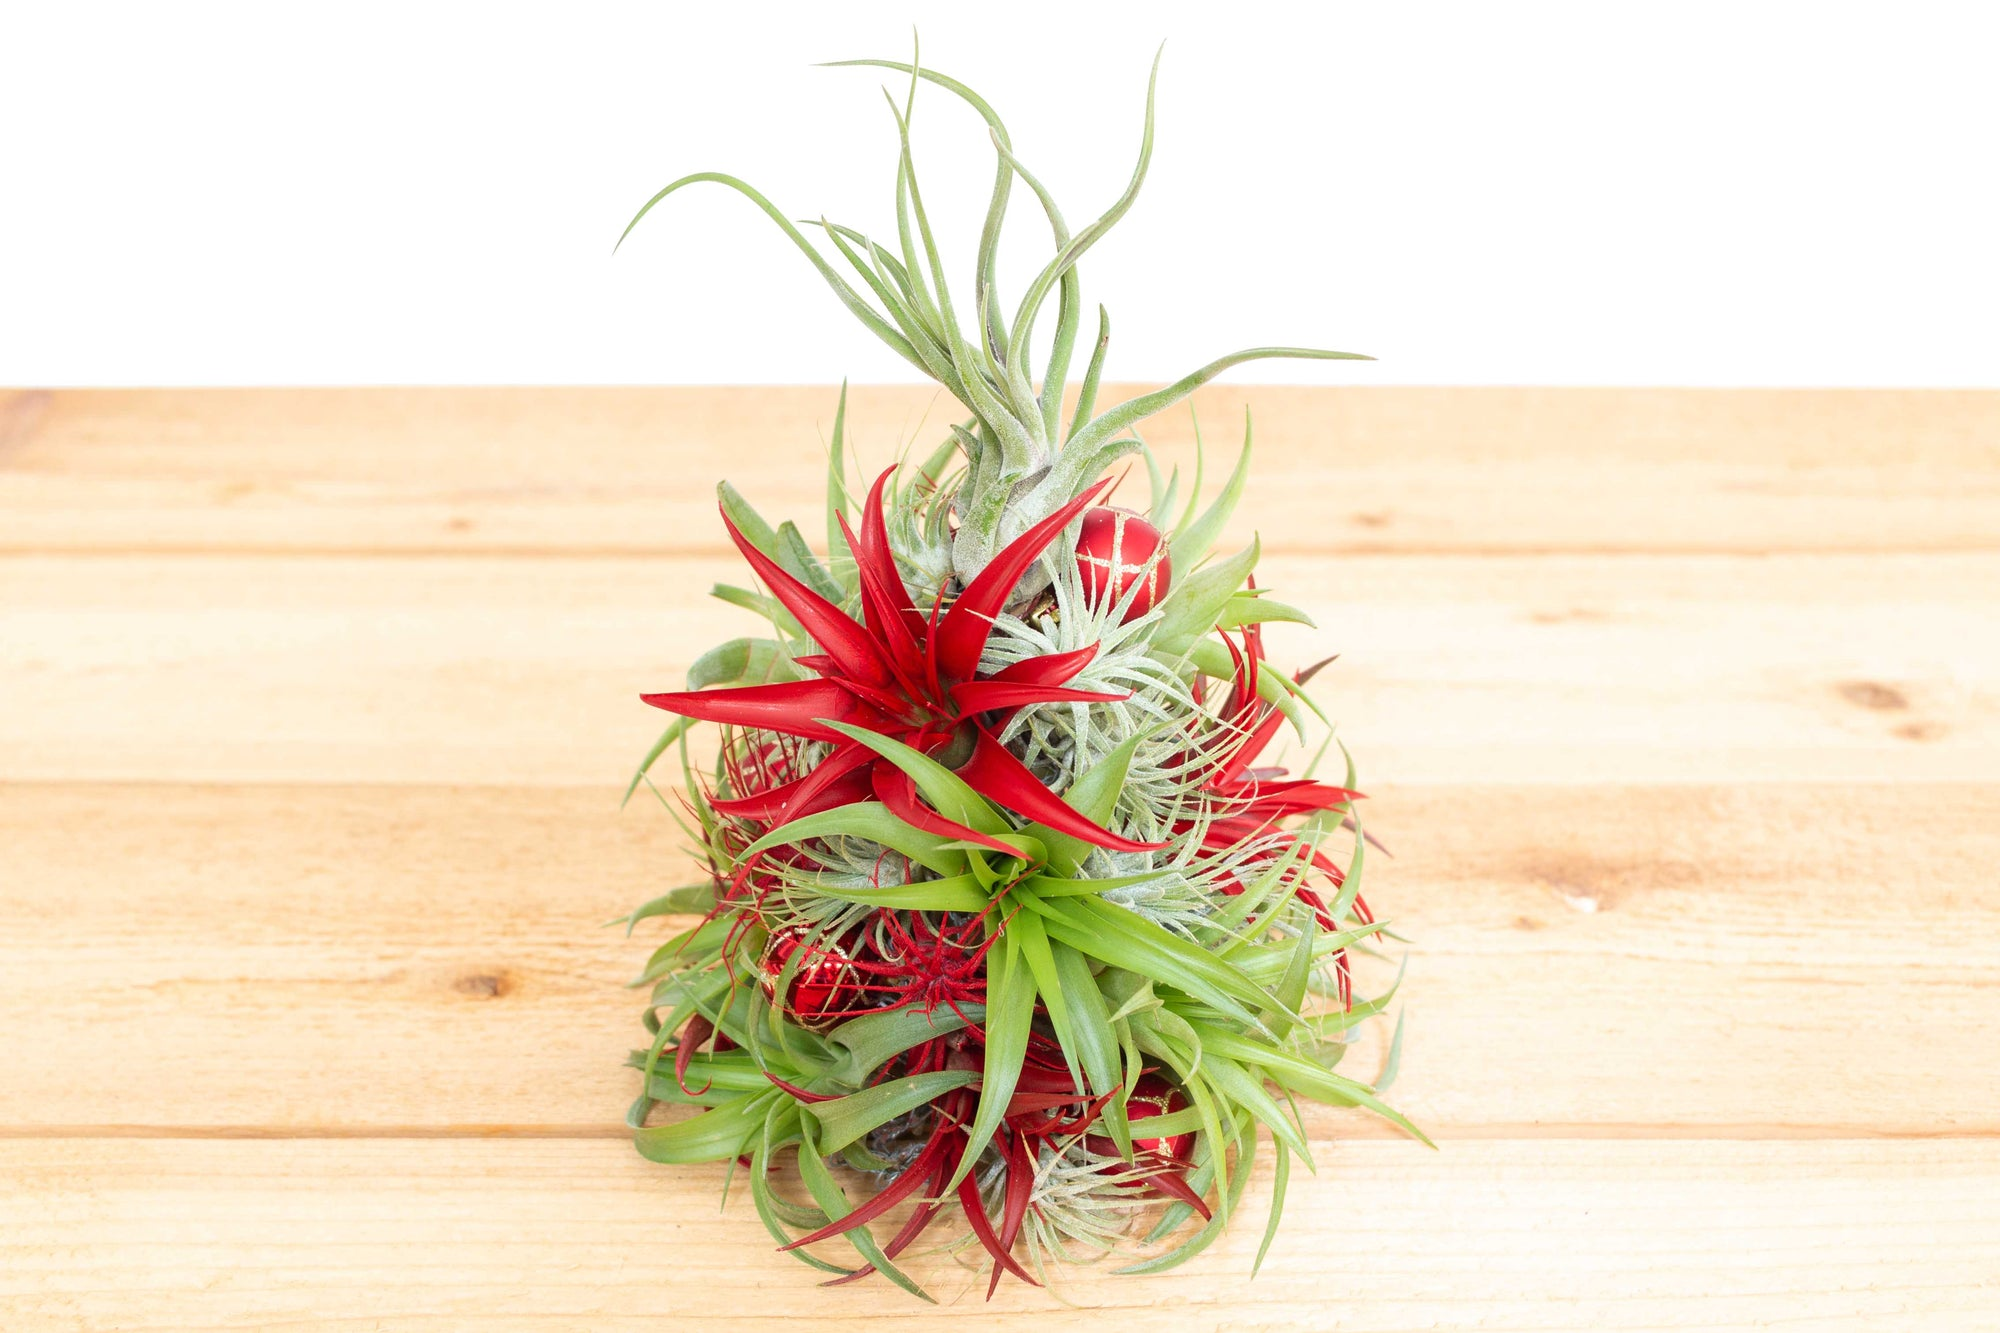 PRE-ORDER: 10 Inch Tall Miniature Handmade Air Plant Christmas Tree with 35 Living Tillandsias from AirPlantShop.com